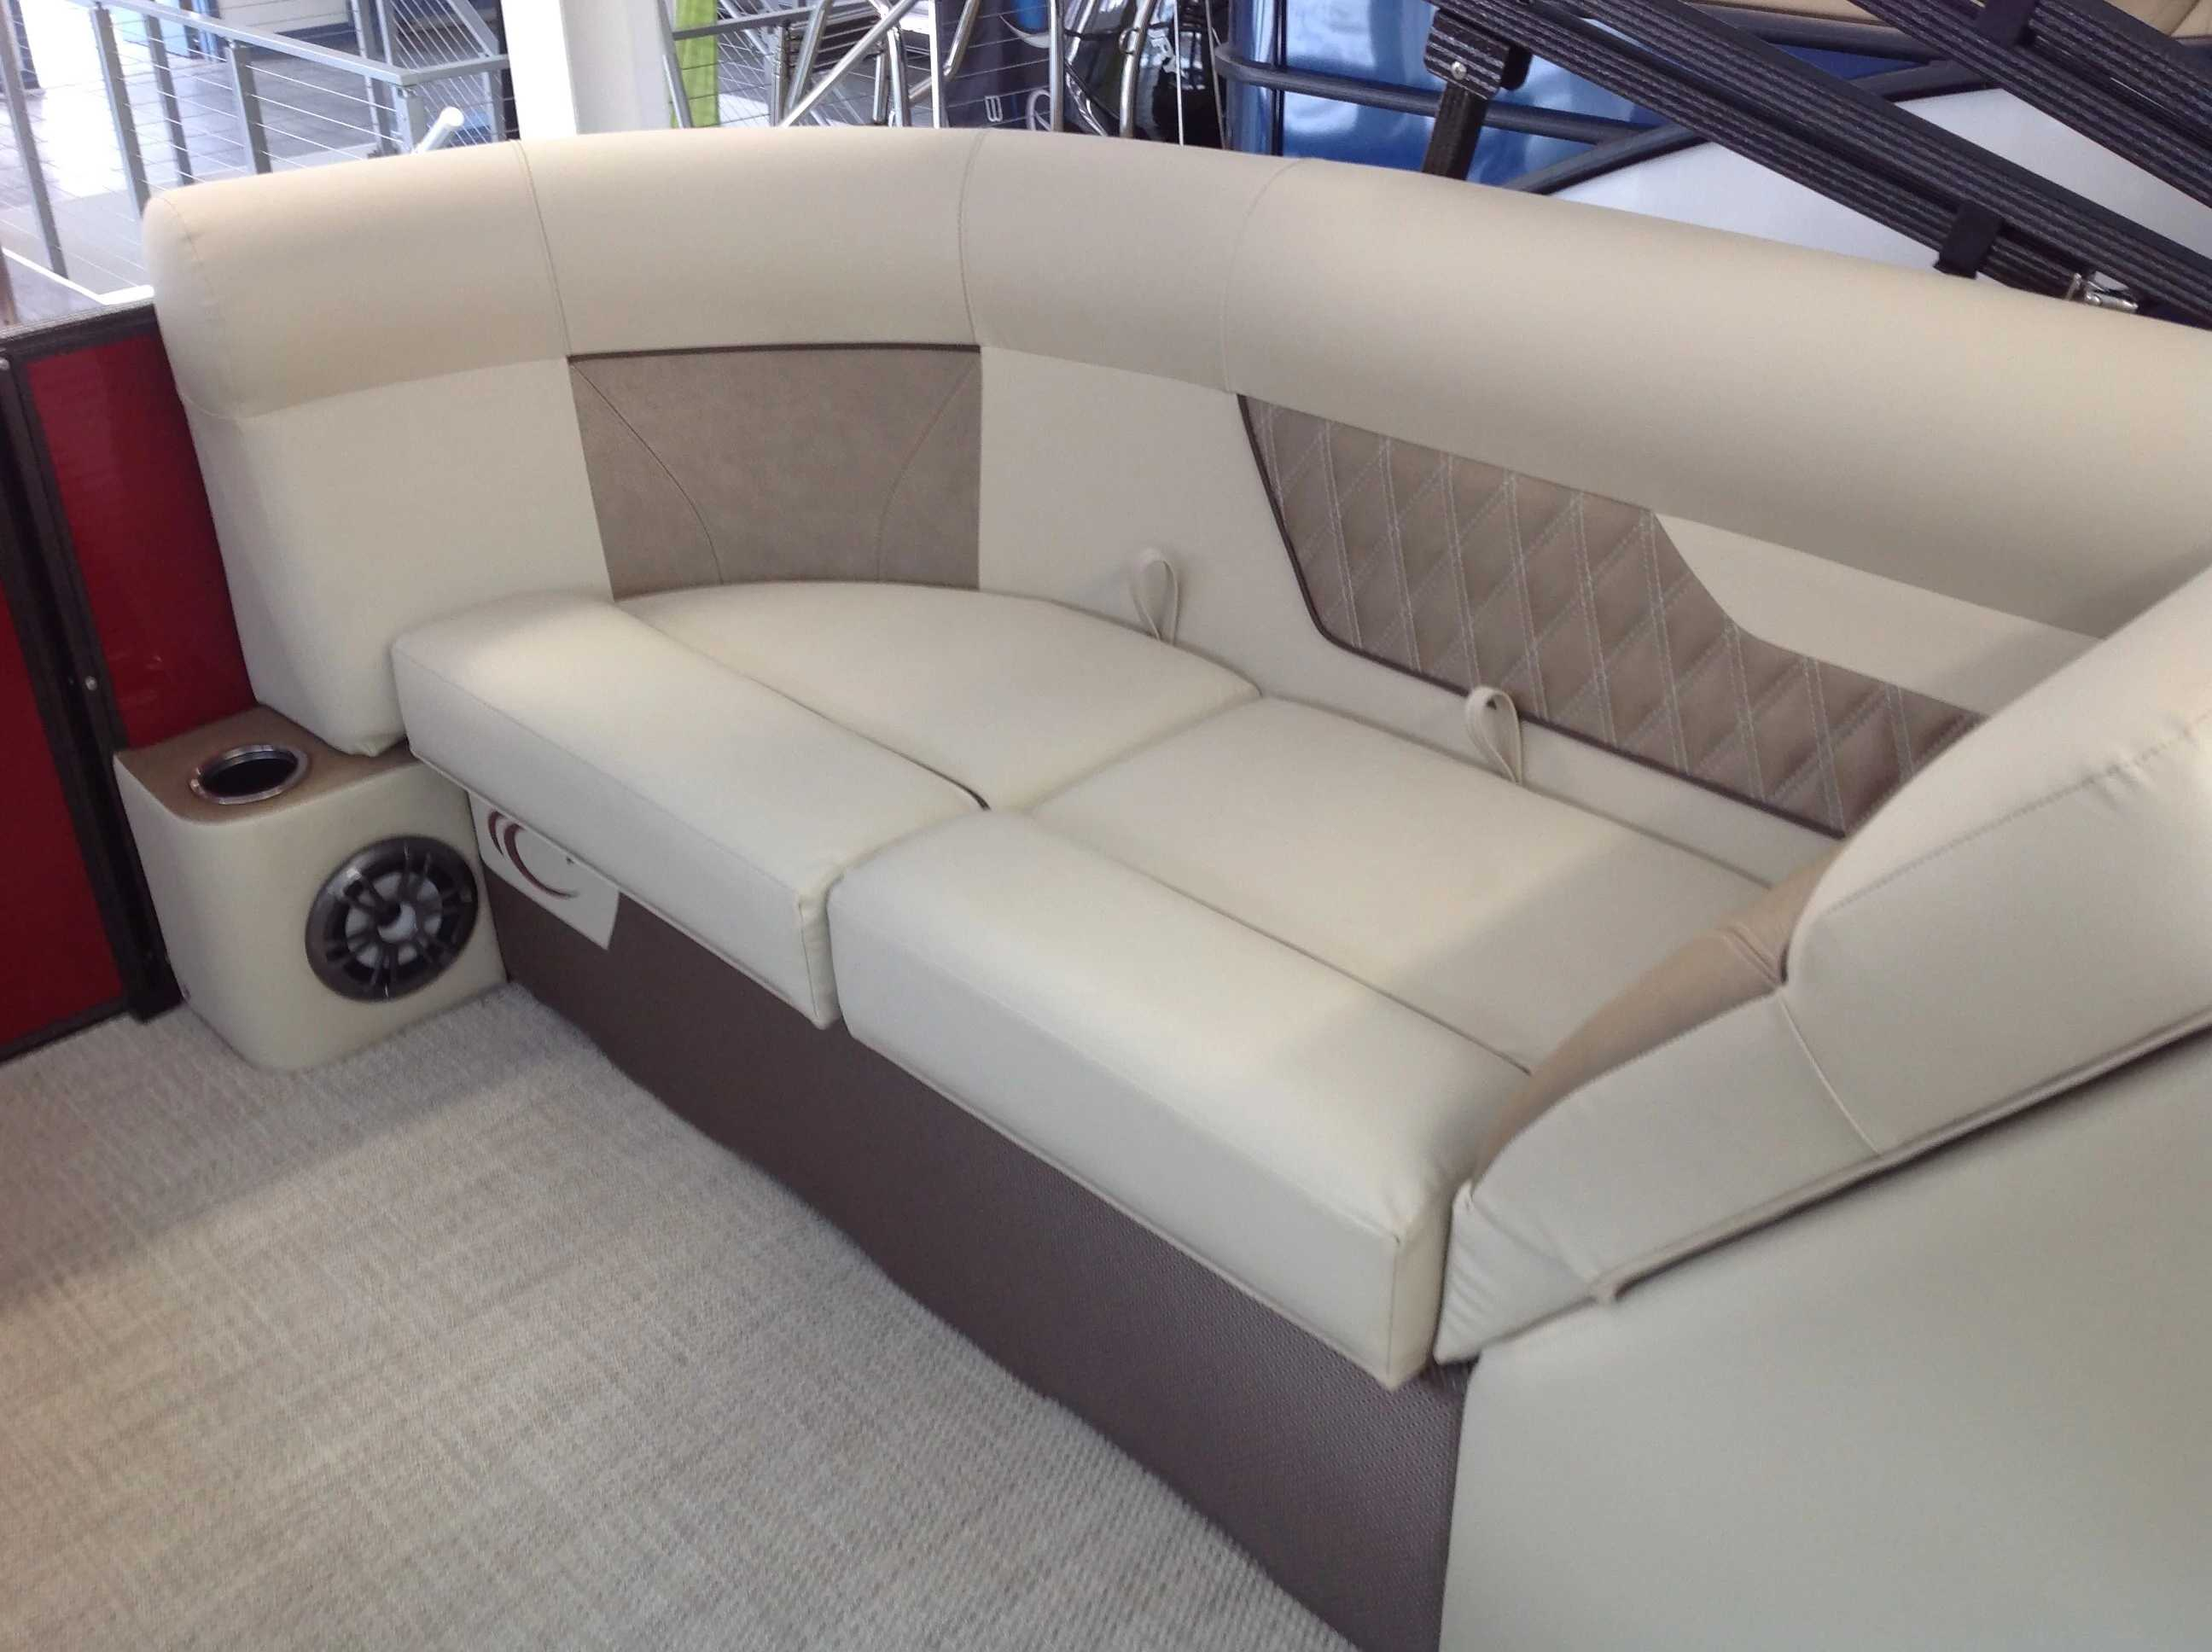 2021 Crest boat for sale, model of the boat is Cl Dlx 220slc & Image # 13 of 15